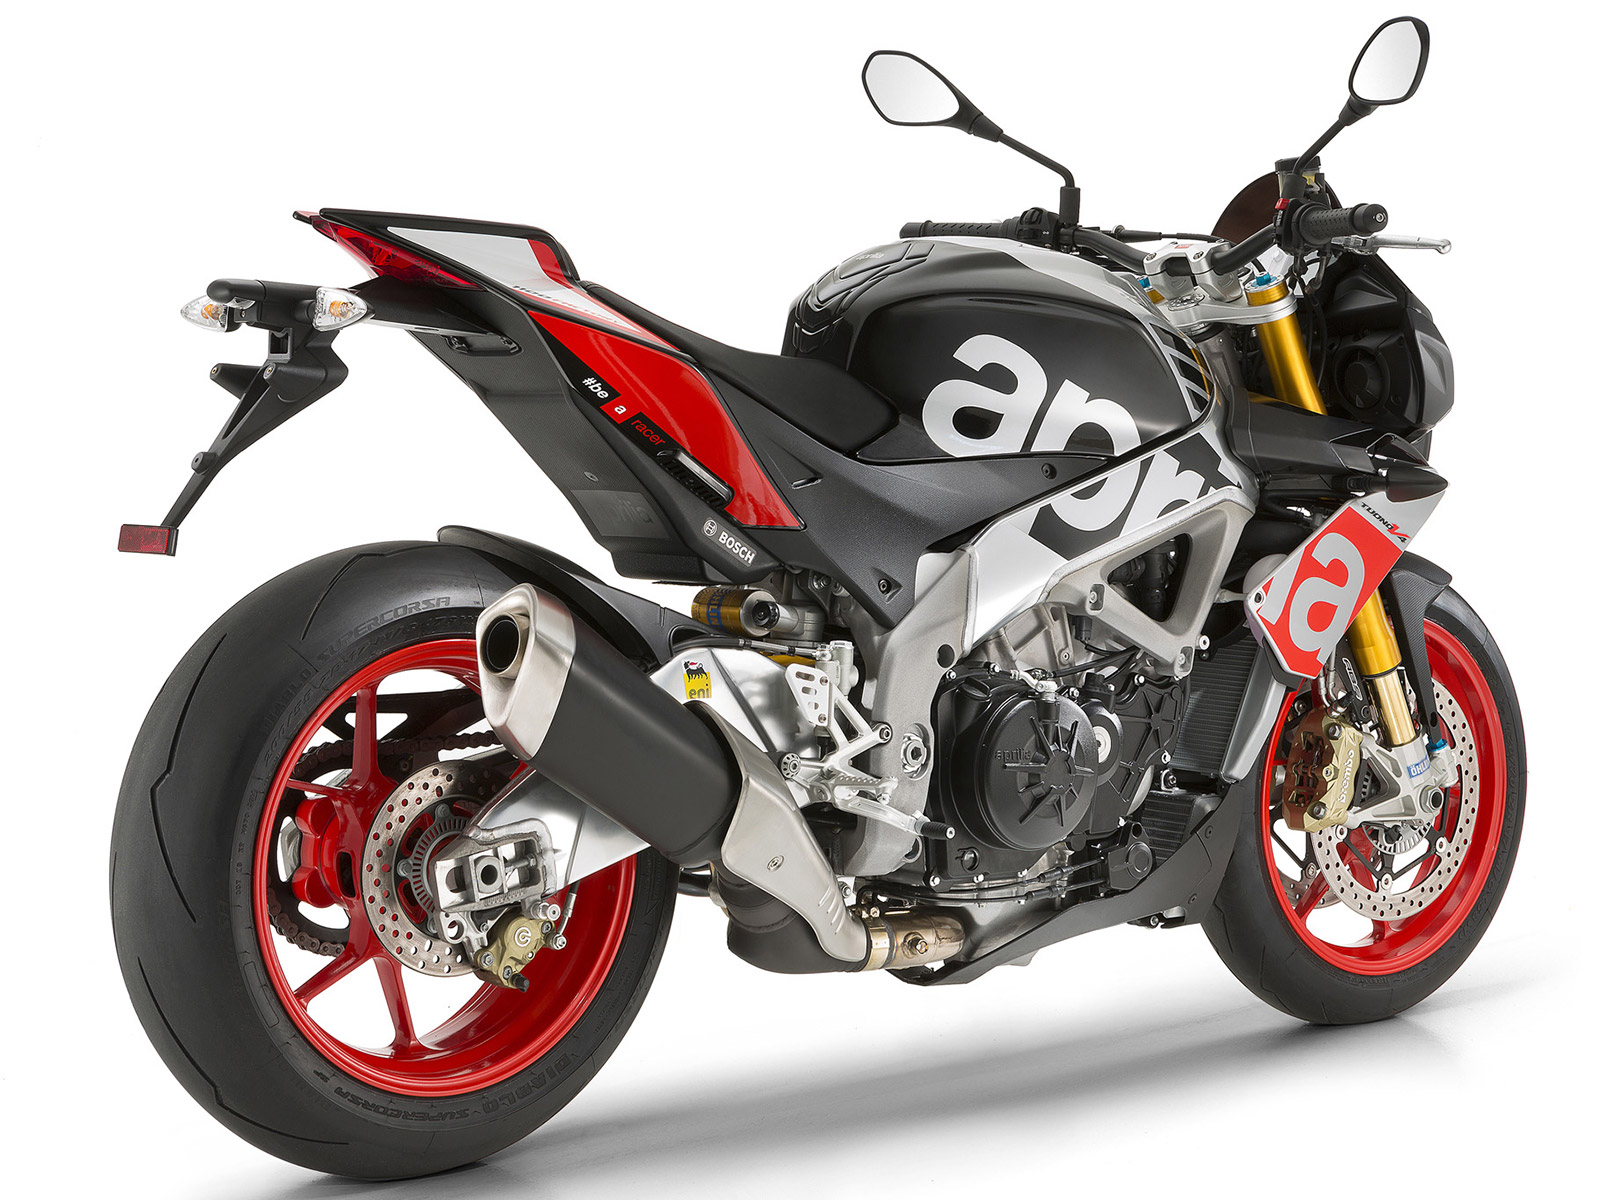 2016 Aprilia Tuono V4 1100 Rr Review Cycle World